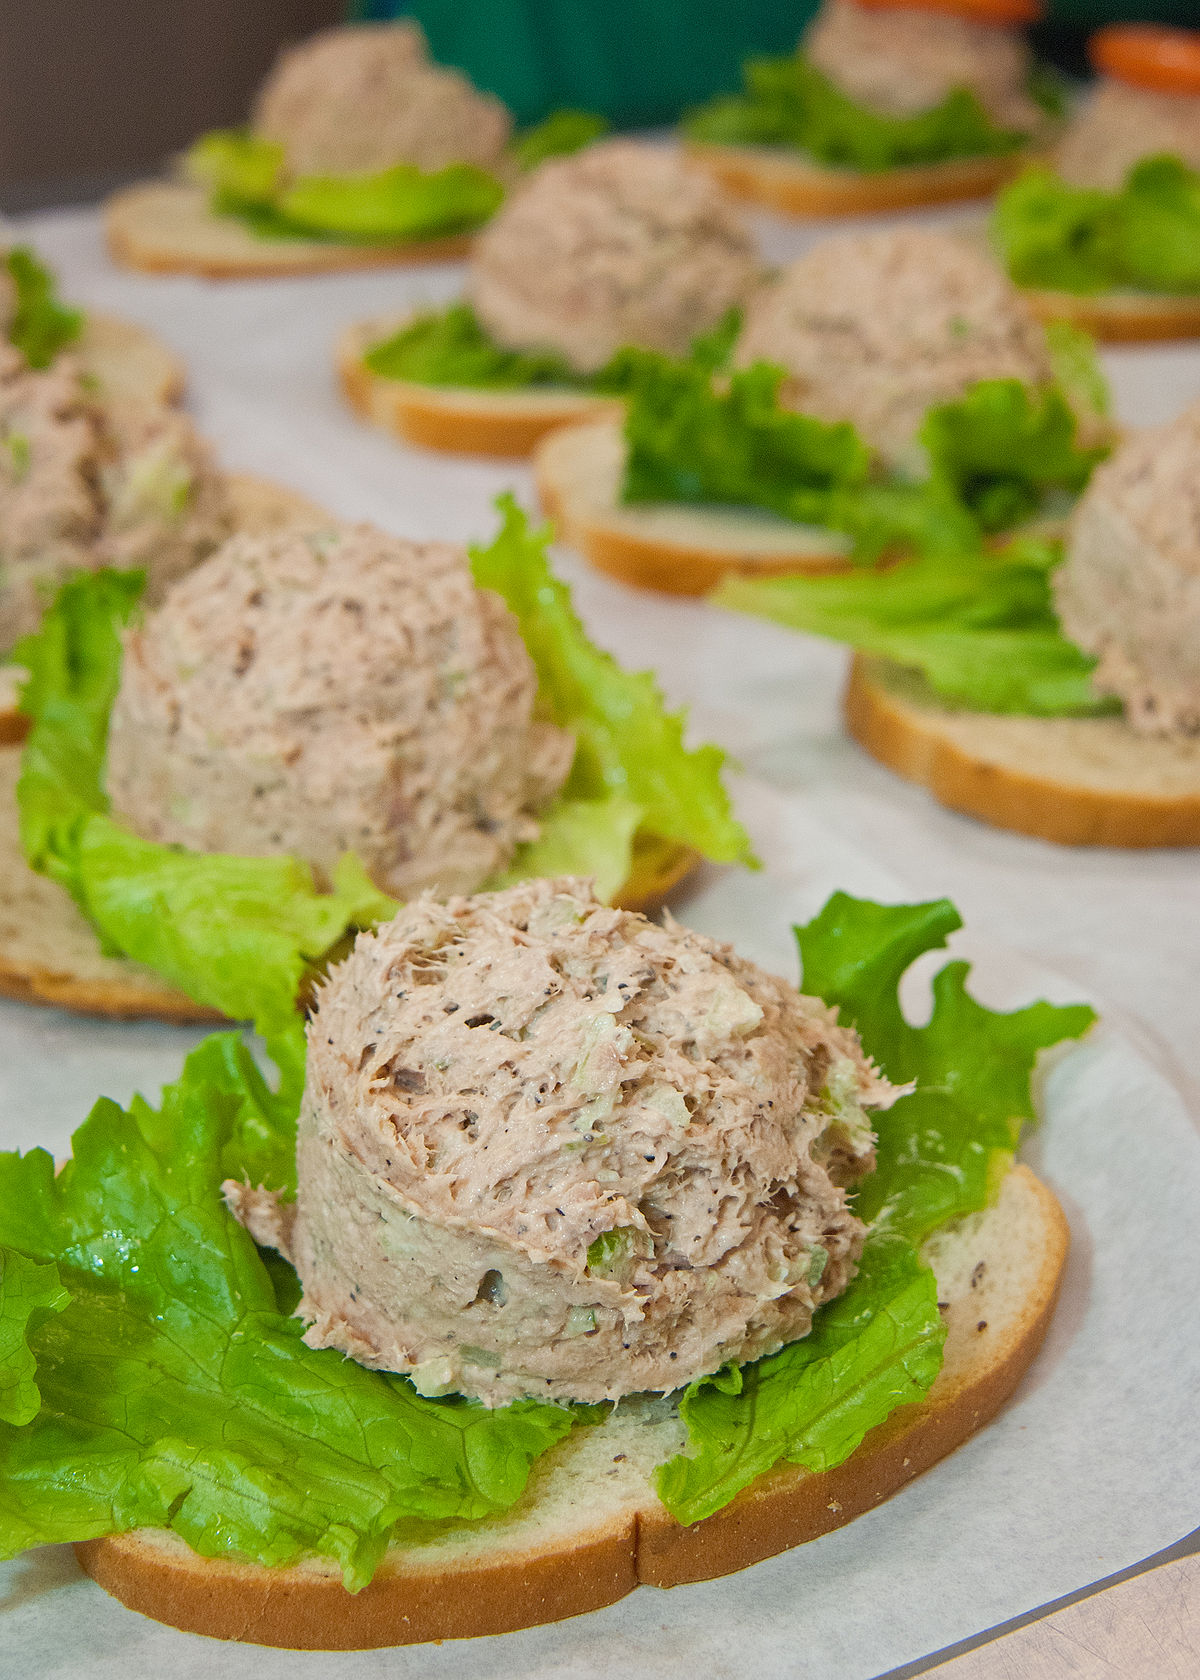 Tuna salad wikipedia for Tuna fish can